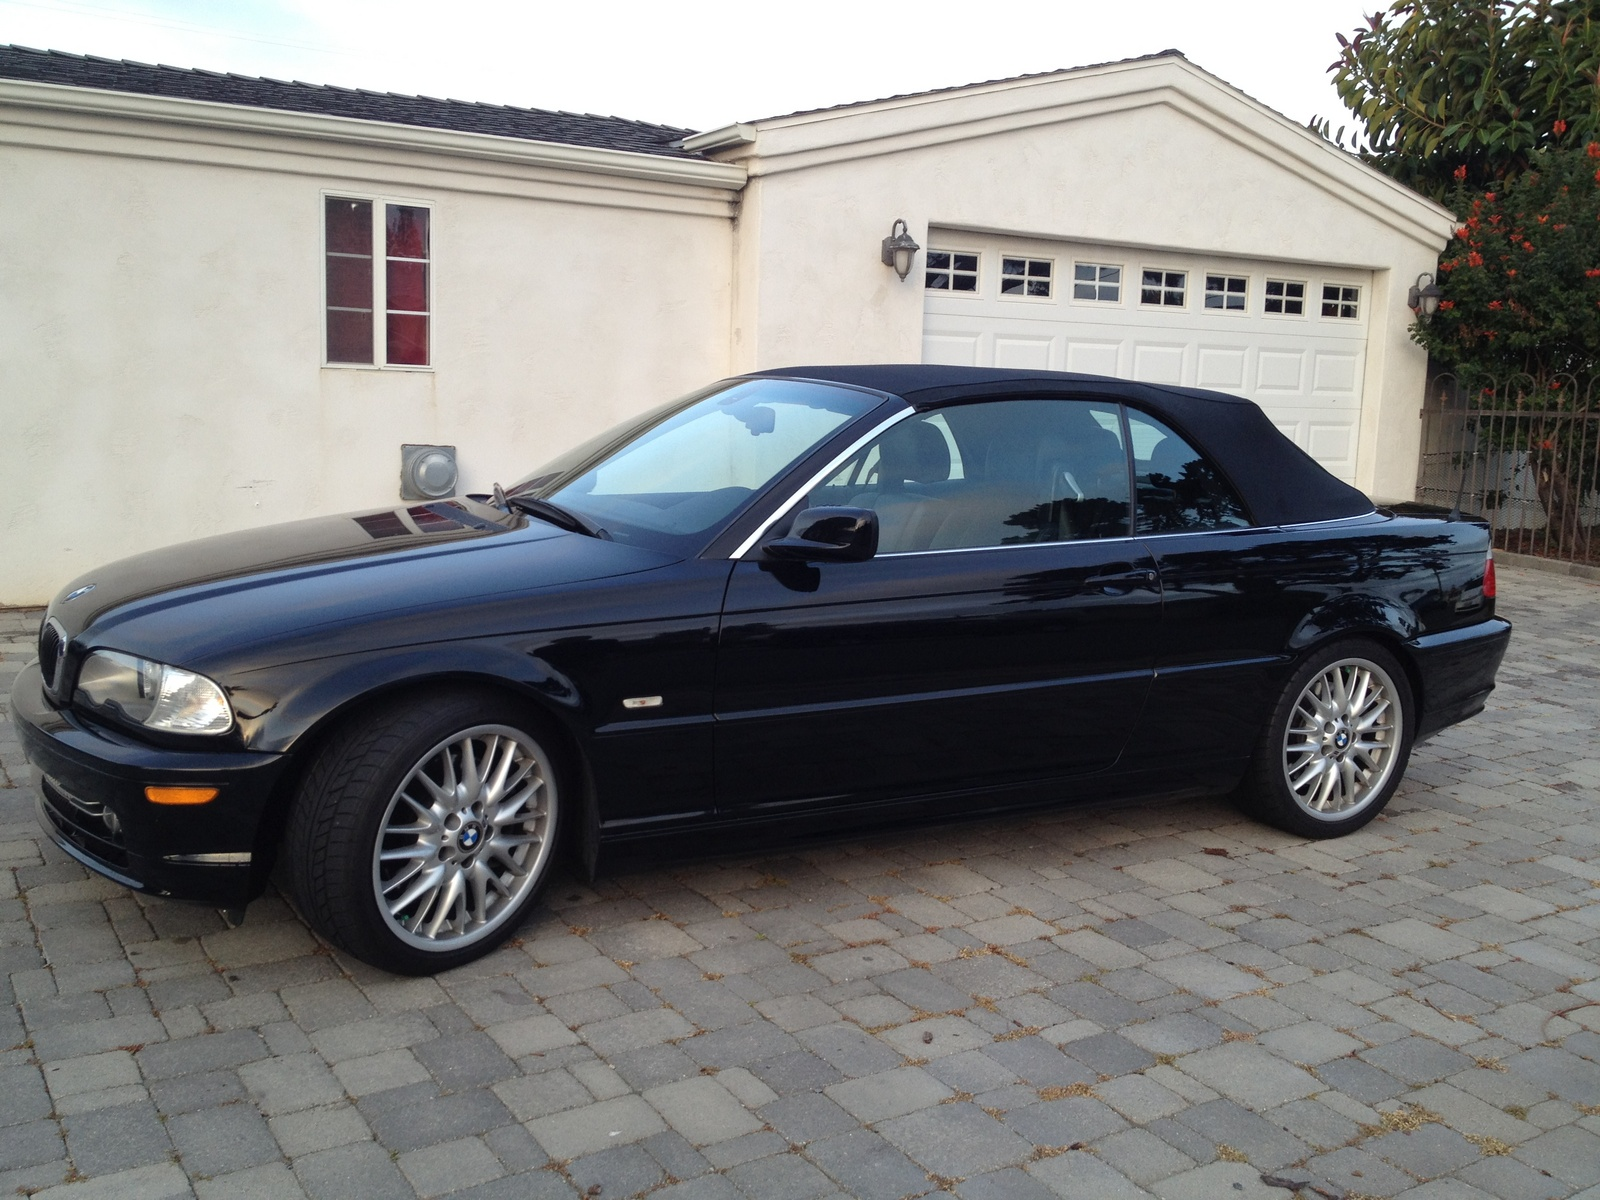 BMW 3 series 330Ci 2003 photo - 5